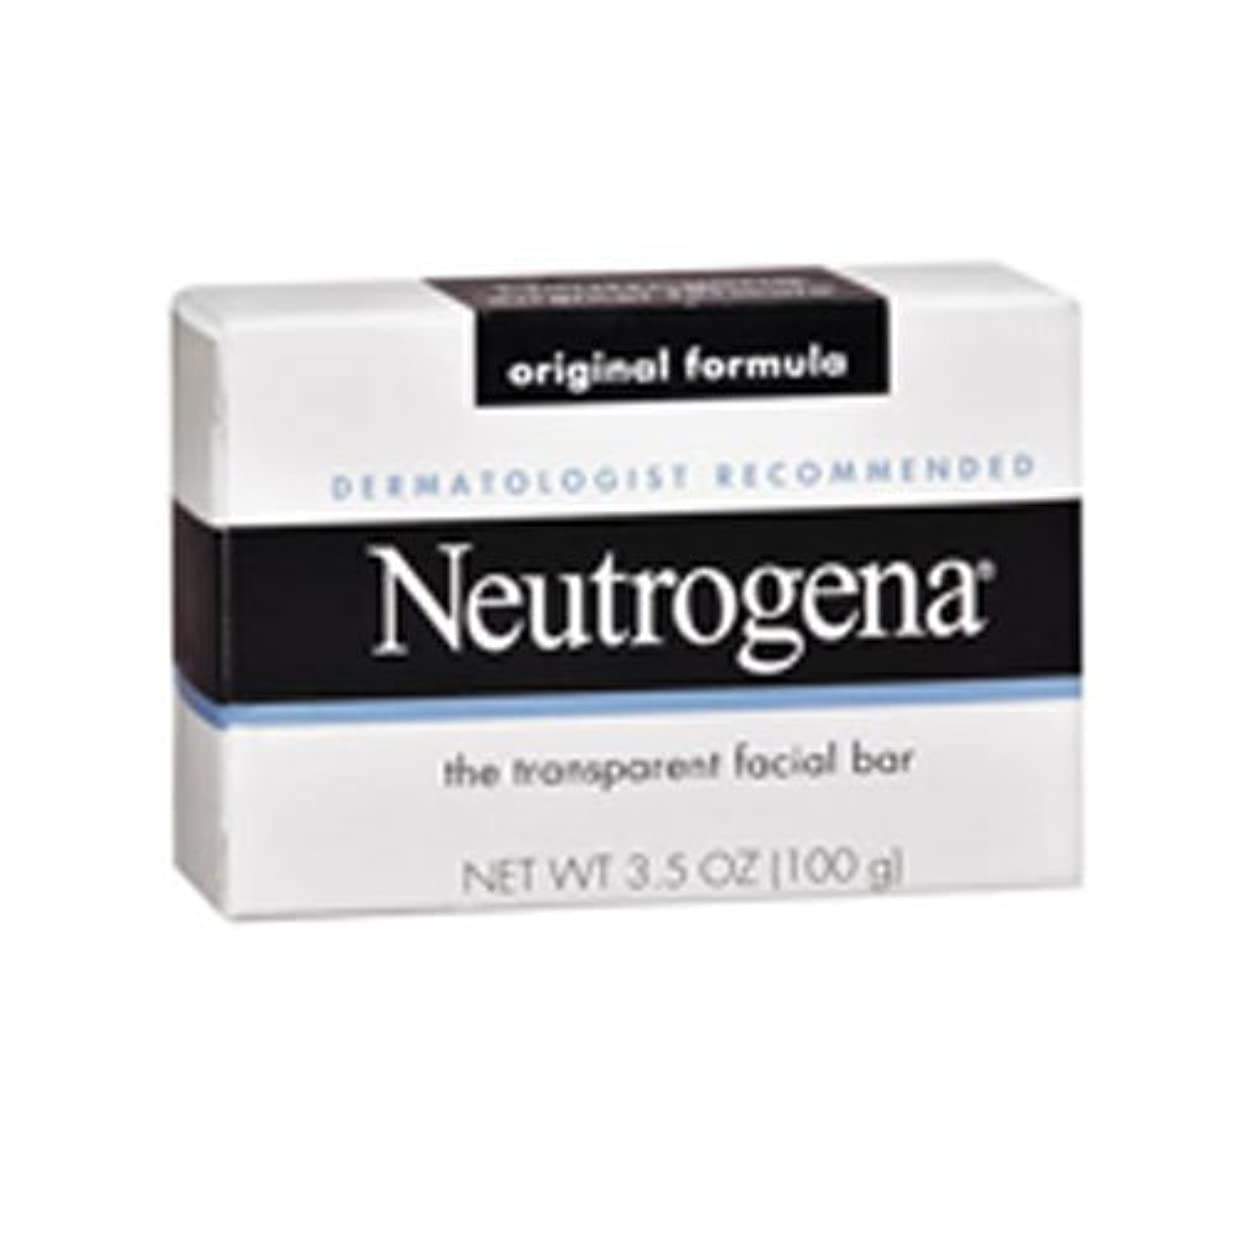 包帯難しいさびた海外直送肘 Neutrogena Transparent Facial Soap Bar, 3.5 oz